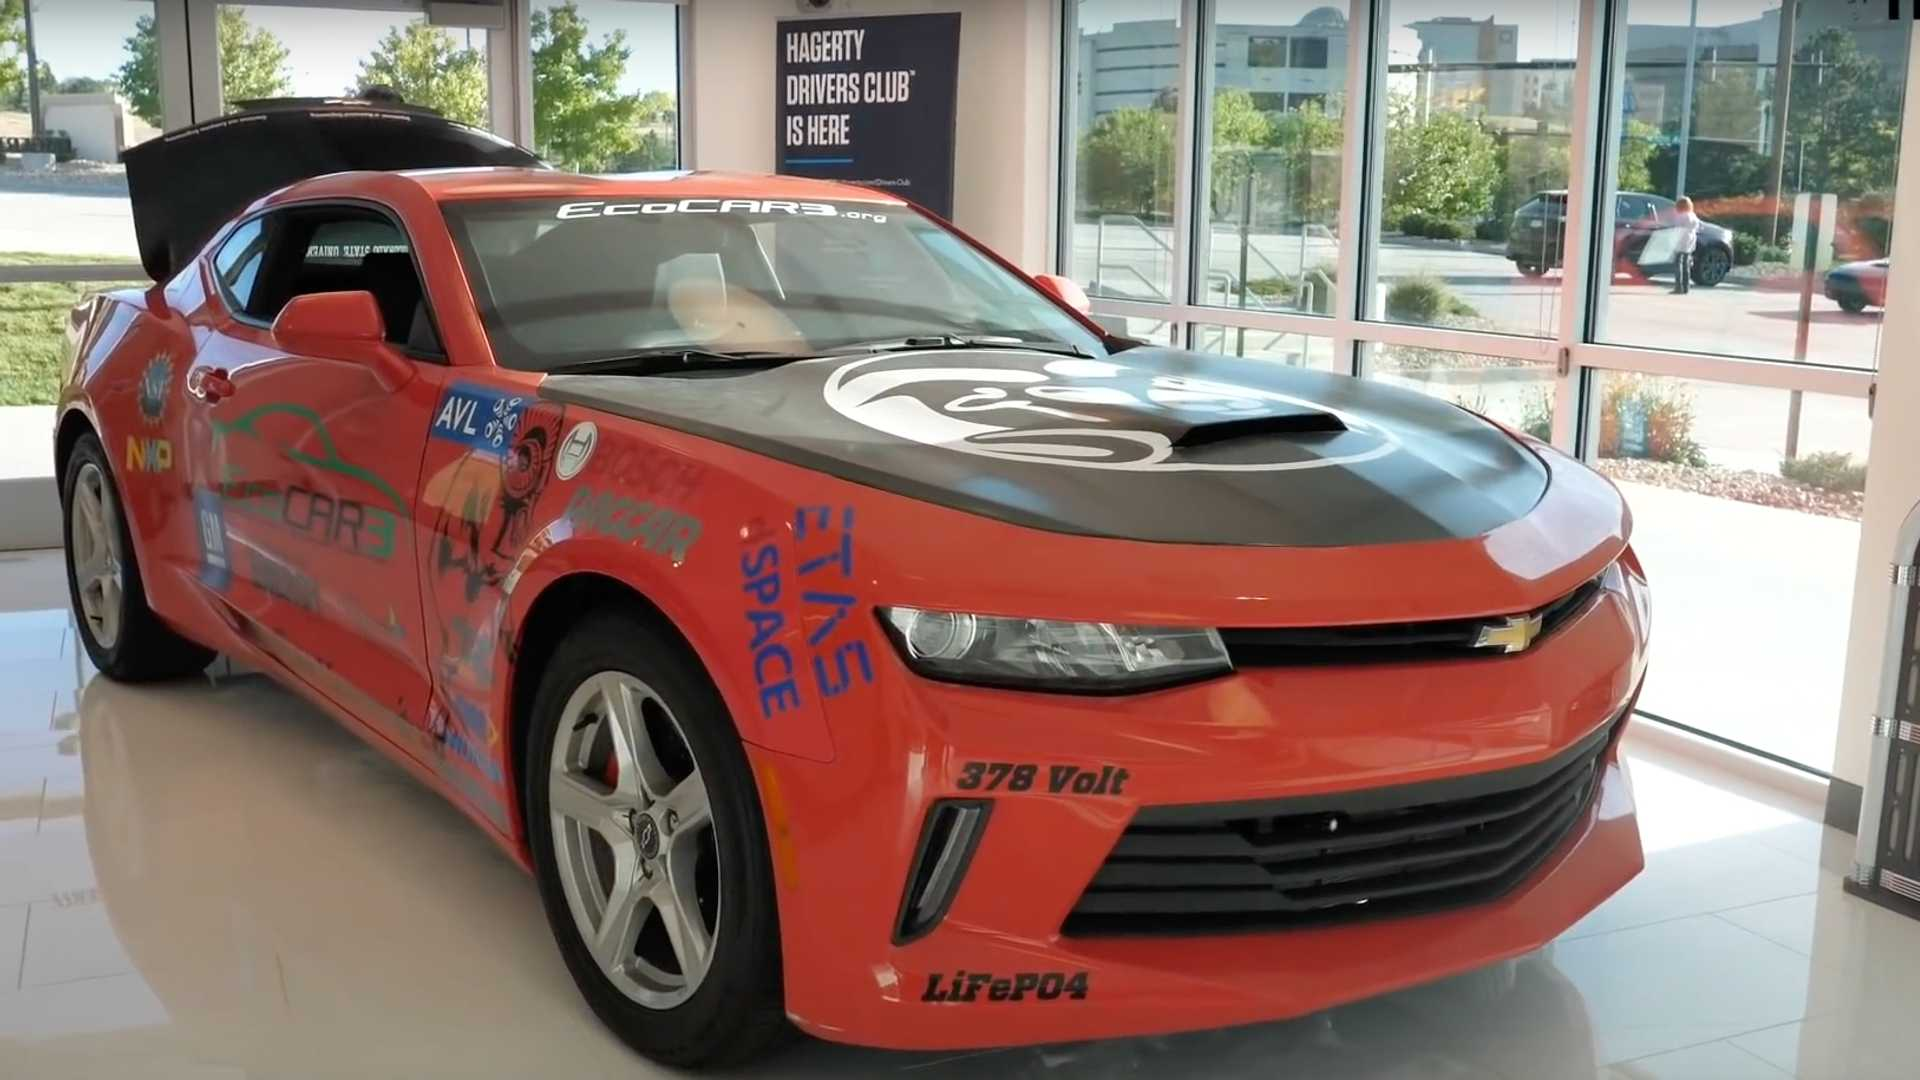 2016 Chevy Cars >> 2016 Chevy Camaro Becomes Hybrid Muscle Car Thanks To Students